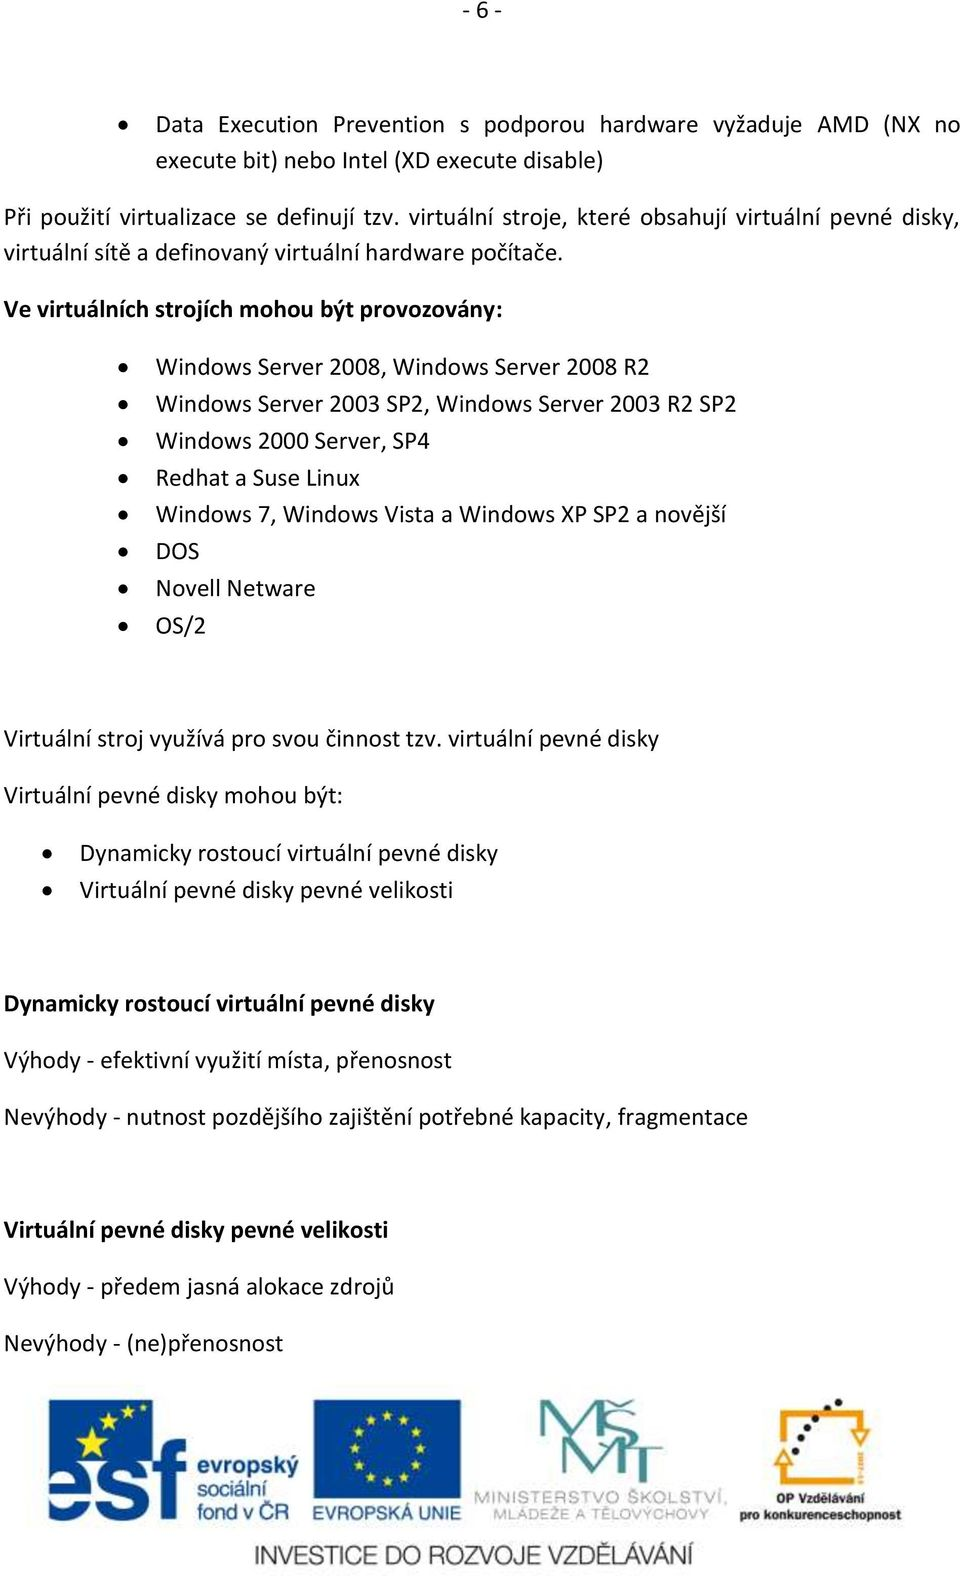 Ve virtuálních strojích mohou být provozovány: Windows Server 2008, Windows Server 2008 R2 Windows Server 2003 SP2, Windows Server 2003 R2 SP2 Windows 2000 Server, SP4 Redhat a Suse Linux Windows 7,